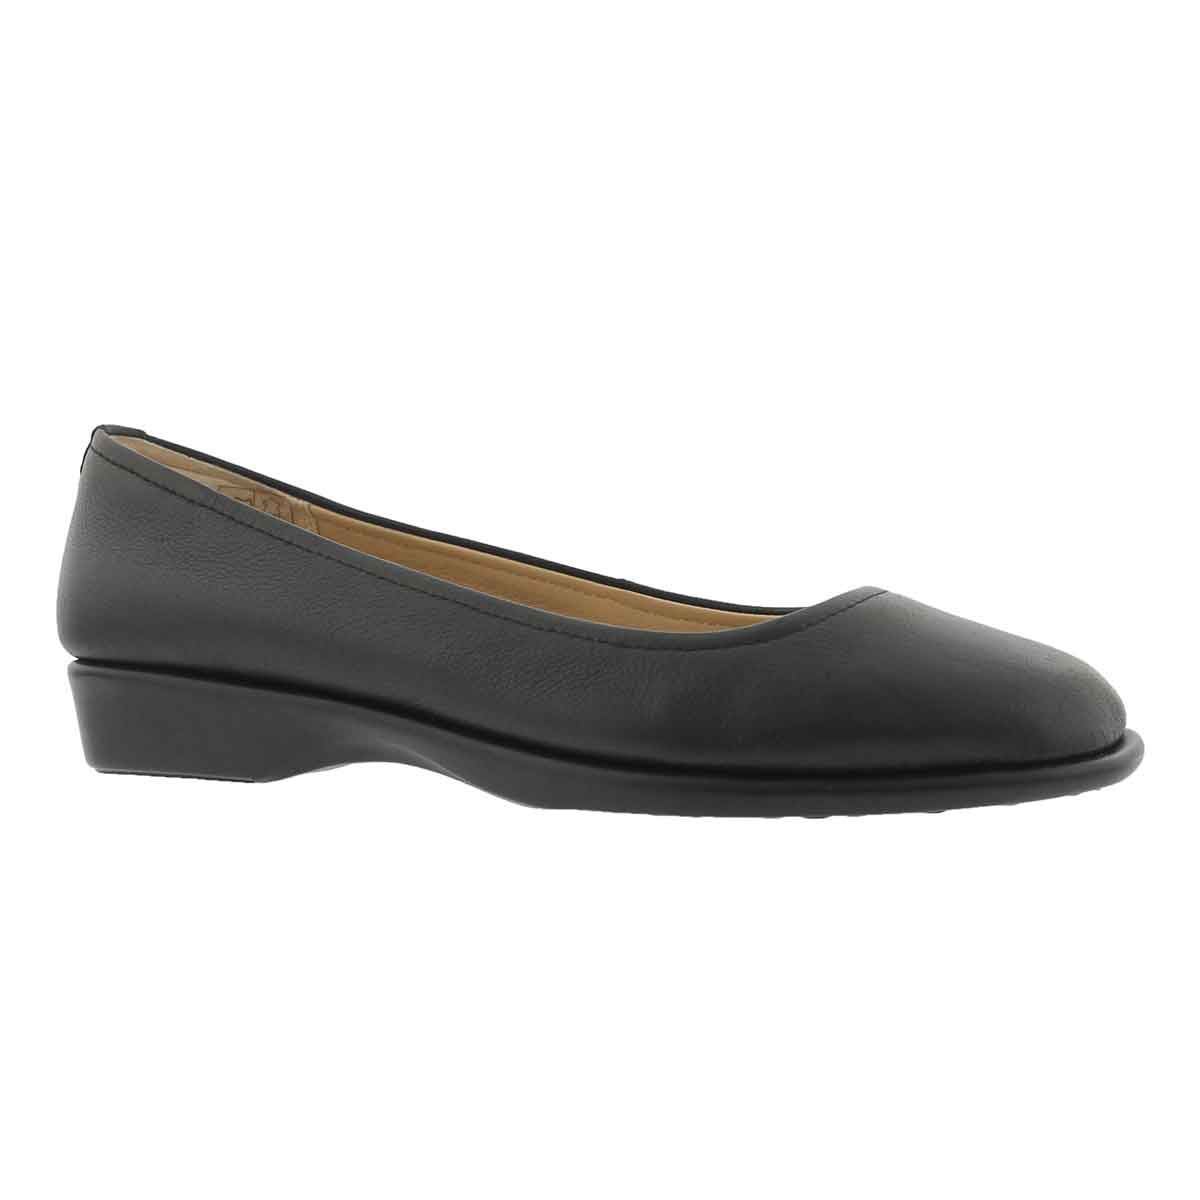 Lds Tabee Paradise black casual flat